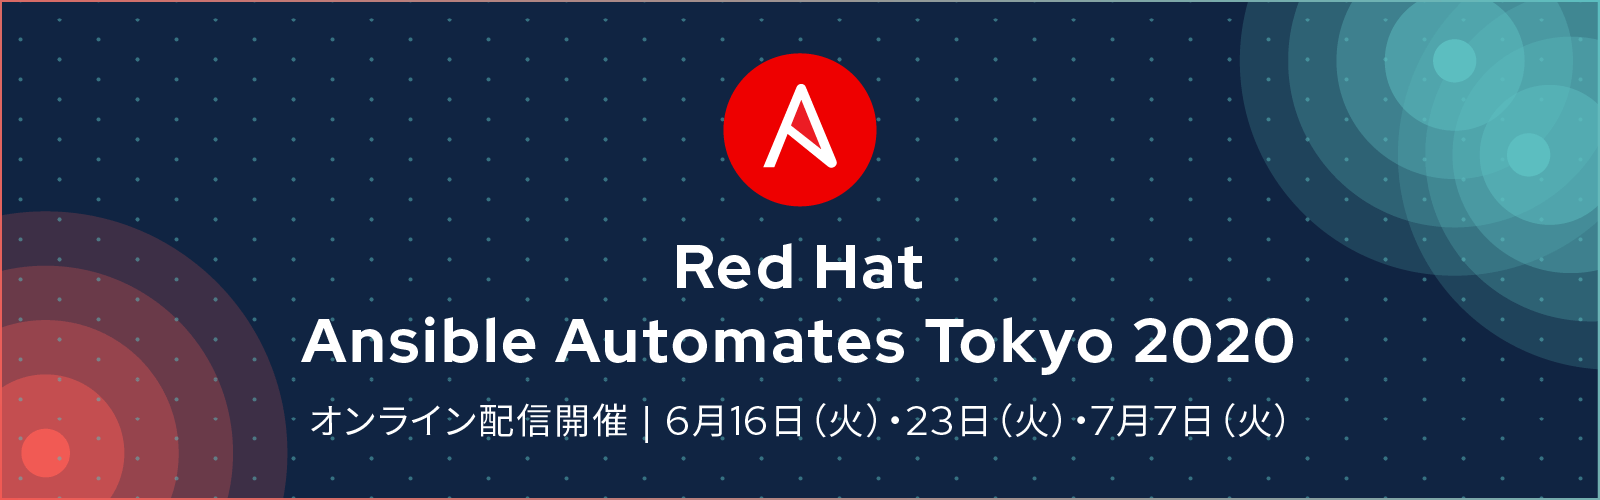 Red Hat Ansible Automates Tokyo 2020